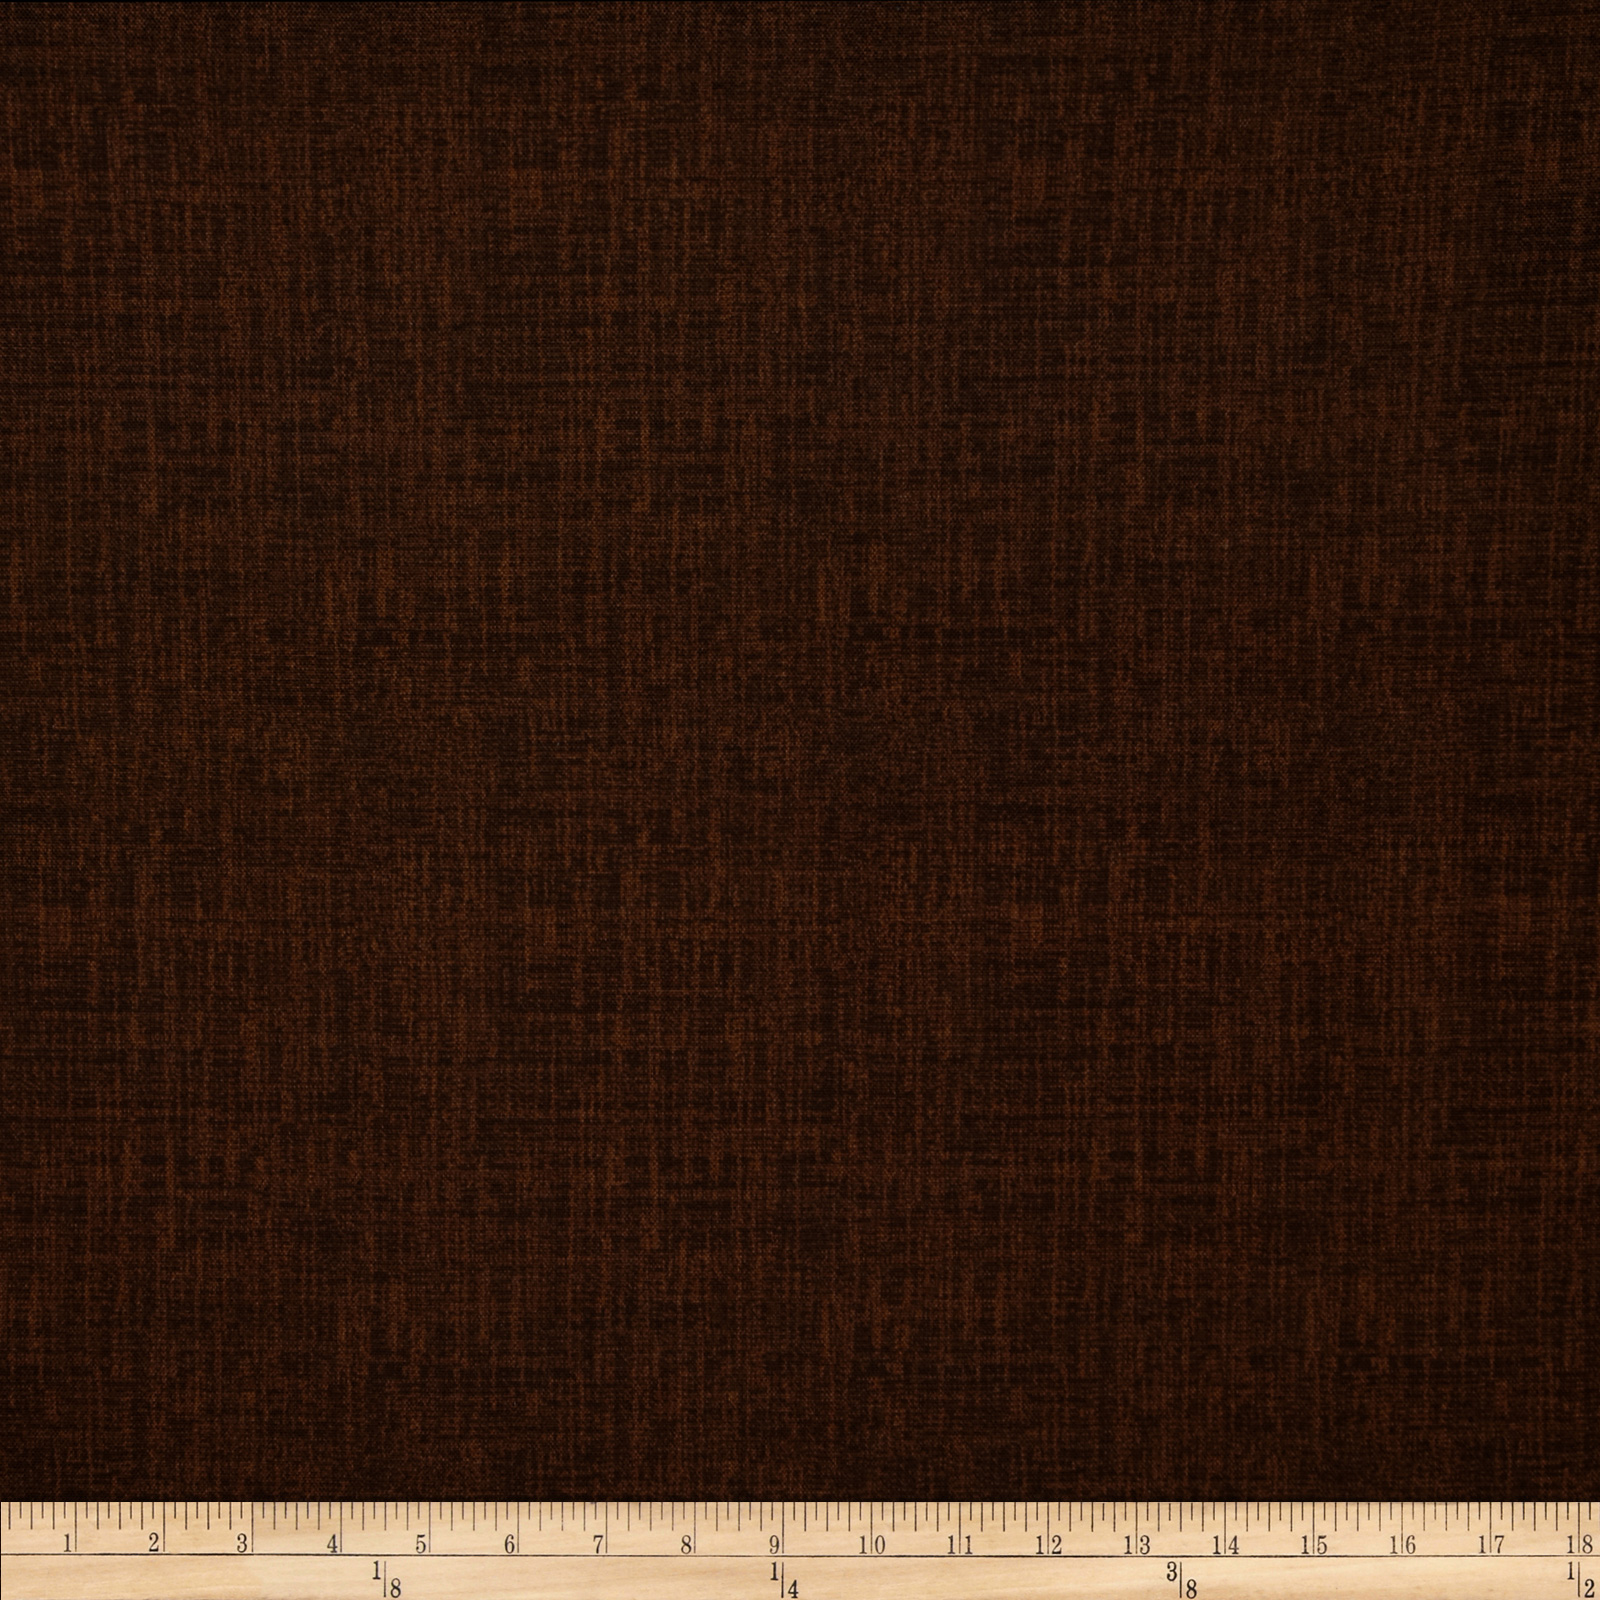 Bryant Indoor/Outdoor Antigua Texture Nutmeg Fabric